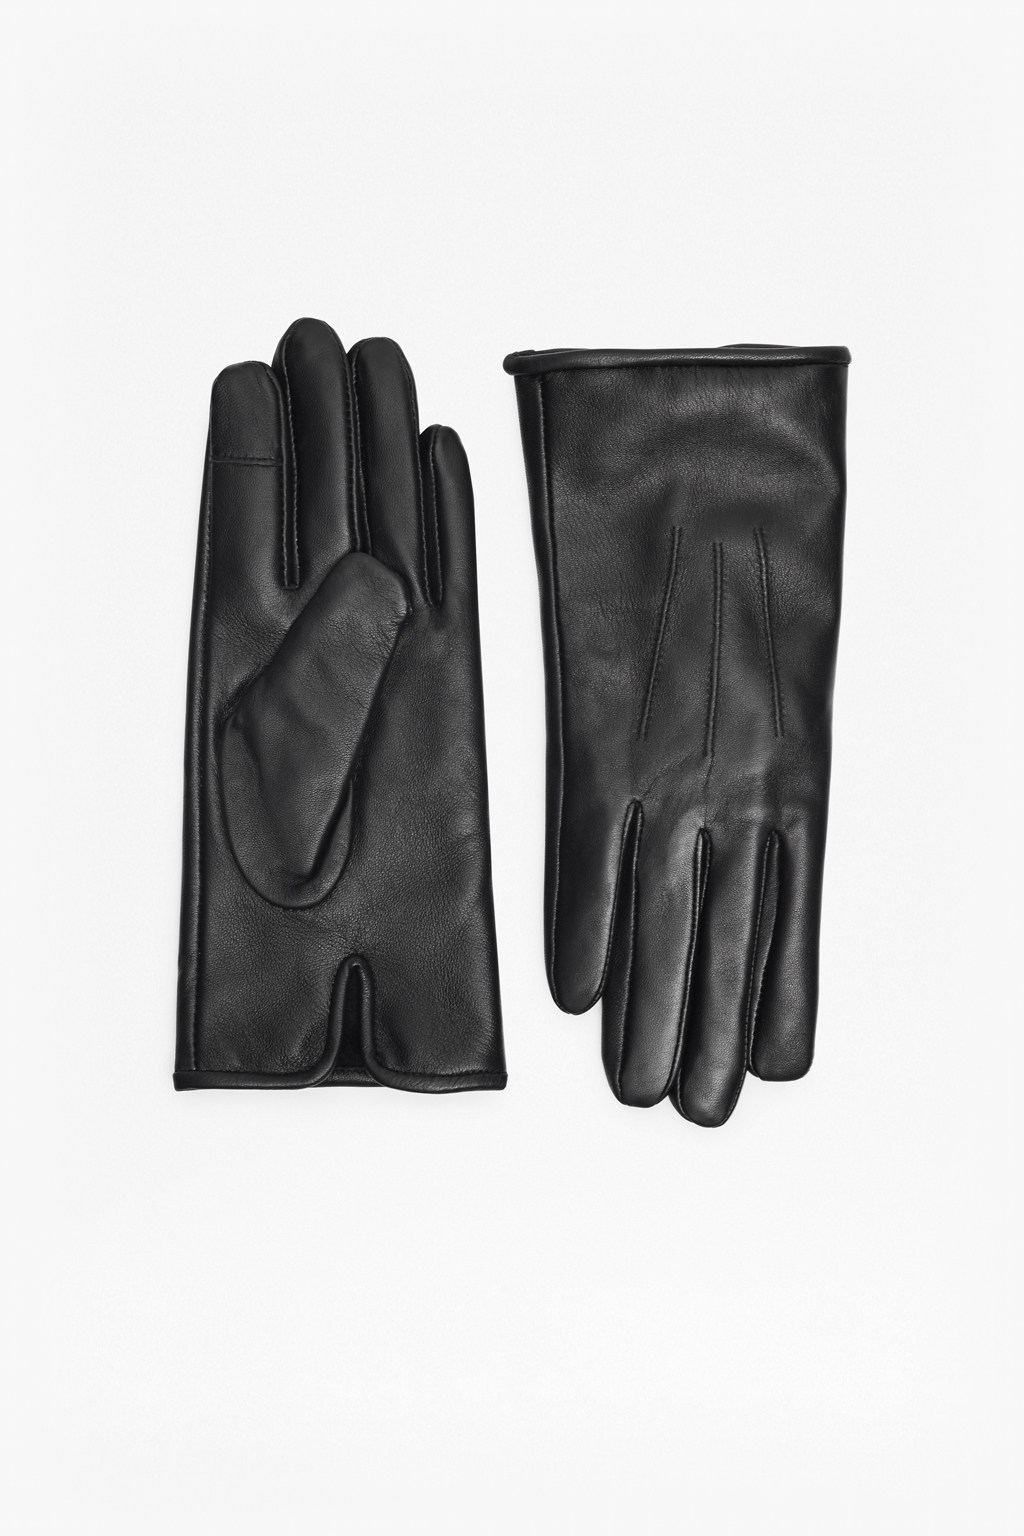 Mens leather touchscreen gloves uk - Delicacy Outdoor Warm Touch Screen Design Men S Gloves Xl 12583483